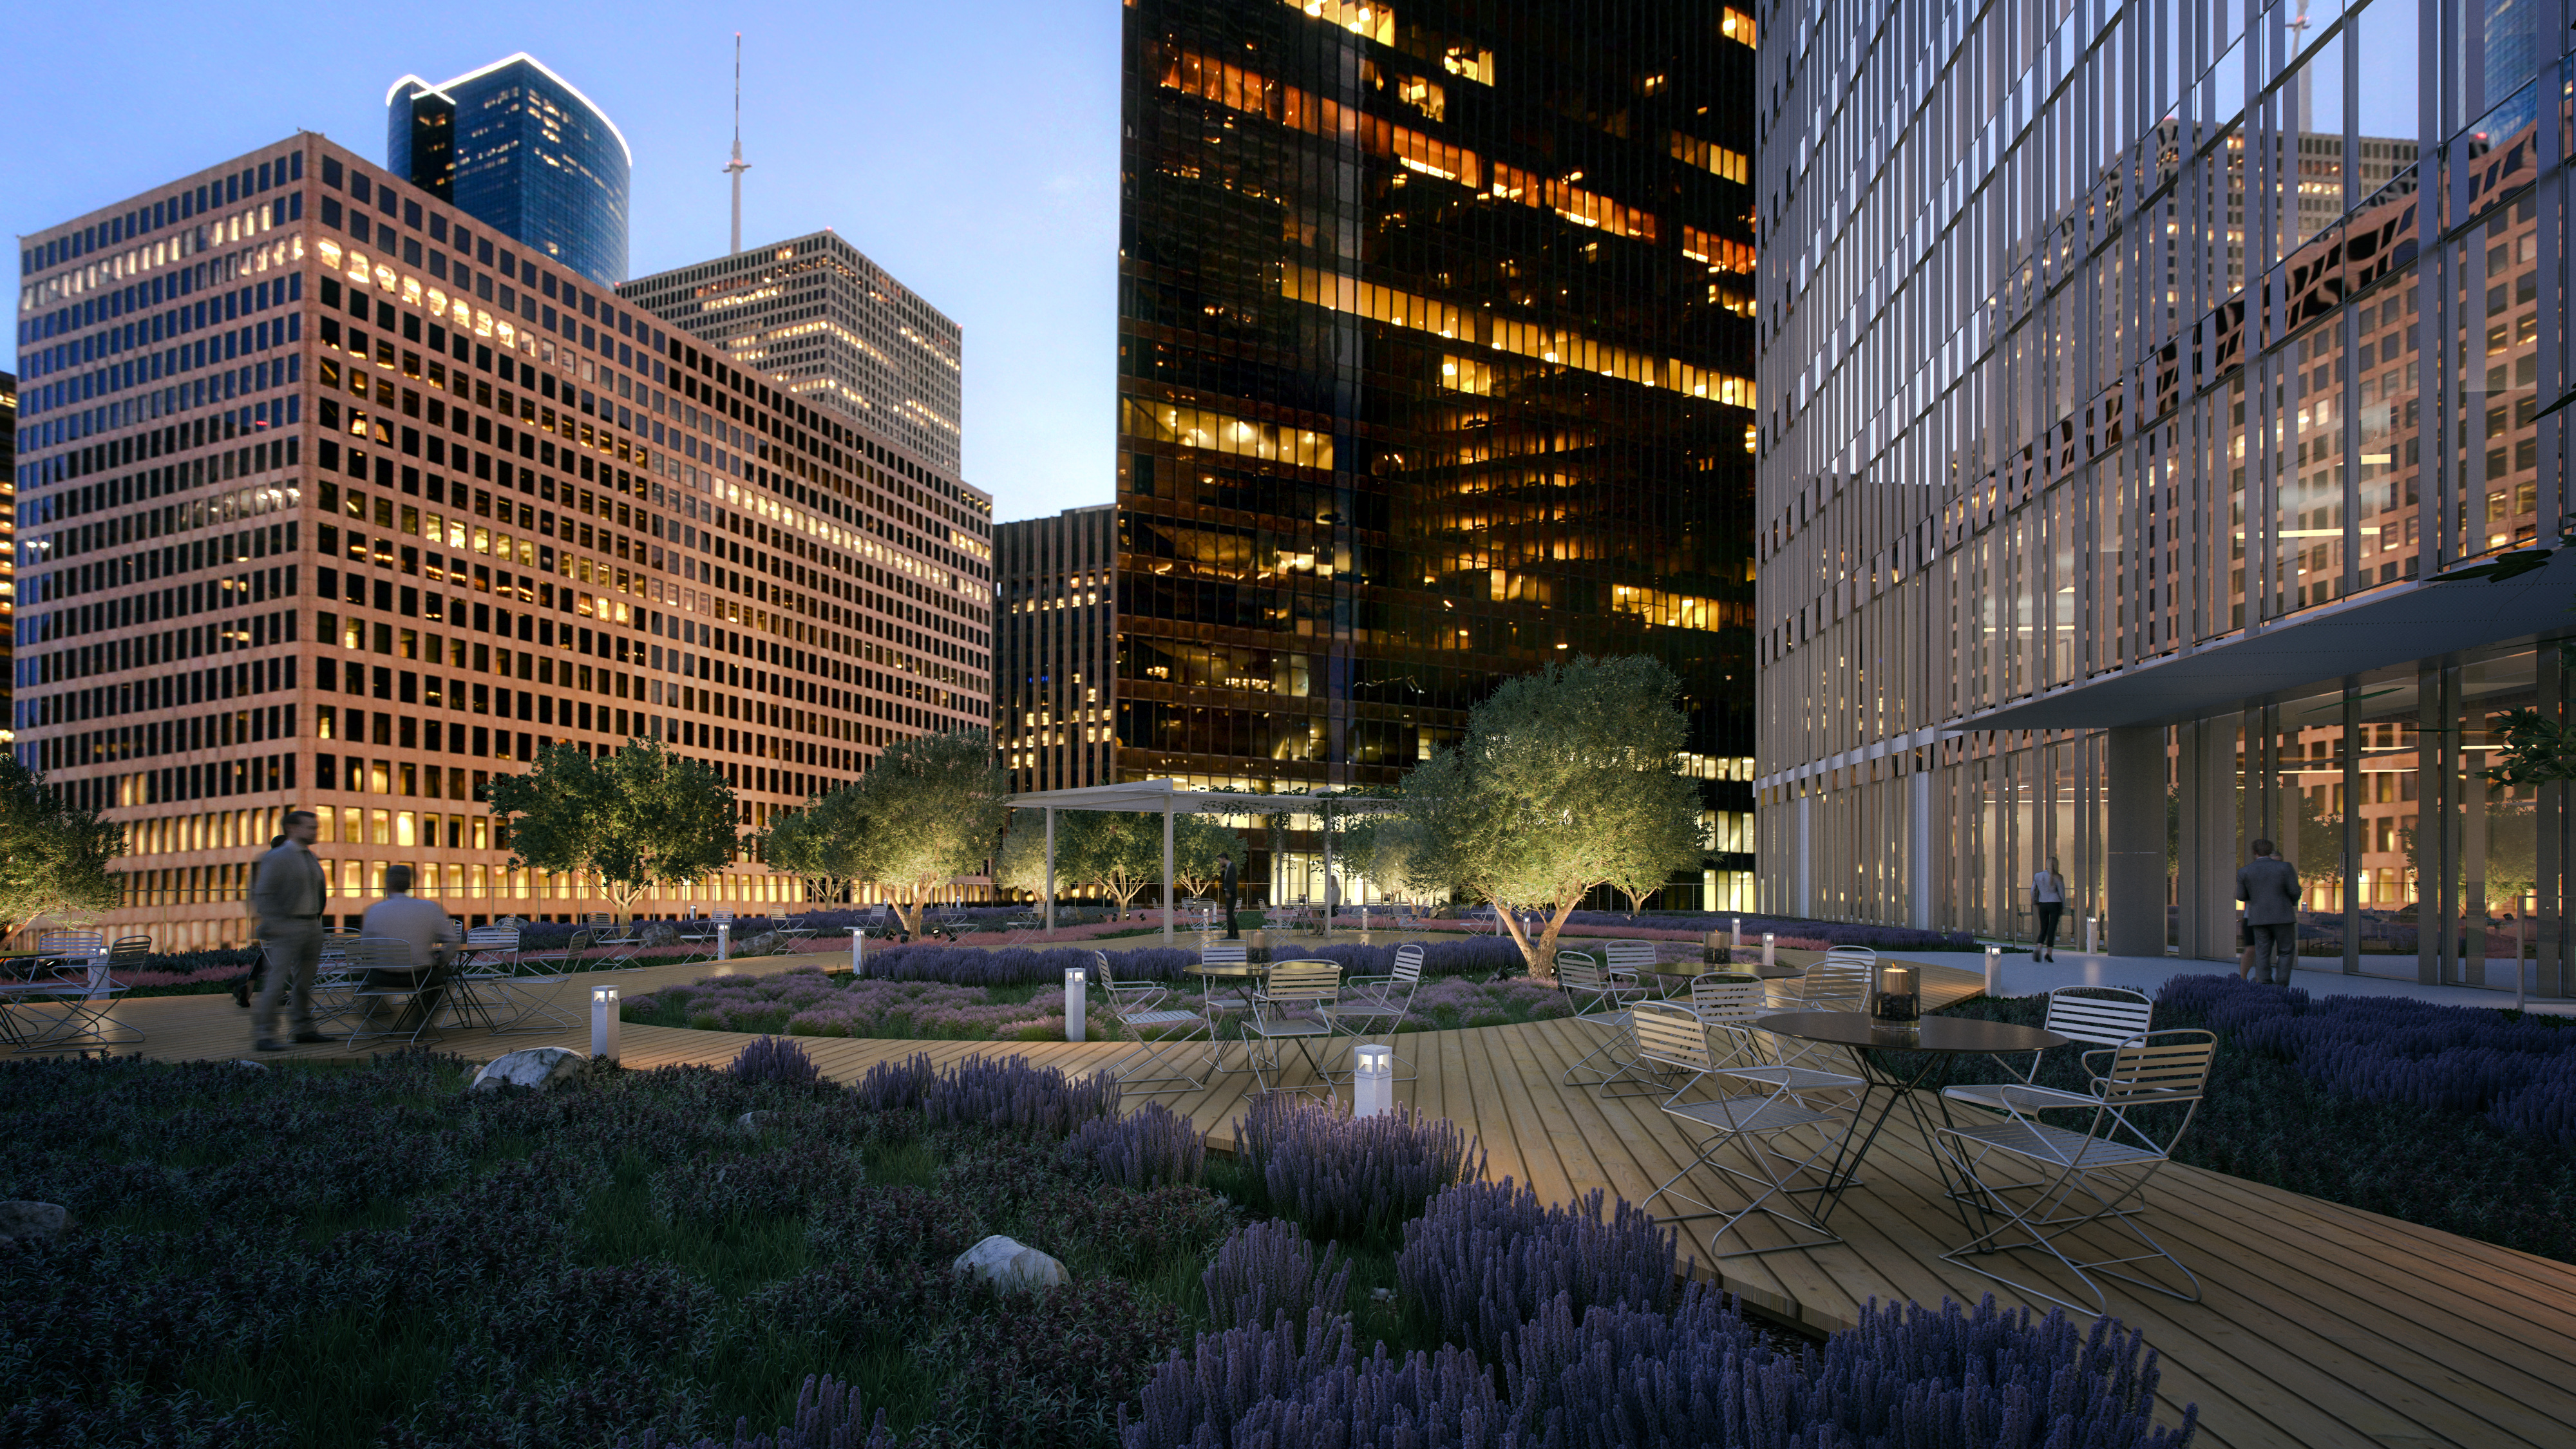 Rendering Of Rooftop Park That Will Be Part Of The New Skanska Officer  Tower Under Construction In Downtown Houston. OJB Landscape Architecture  Designed The ...